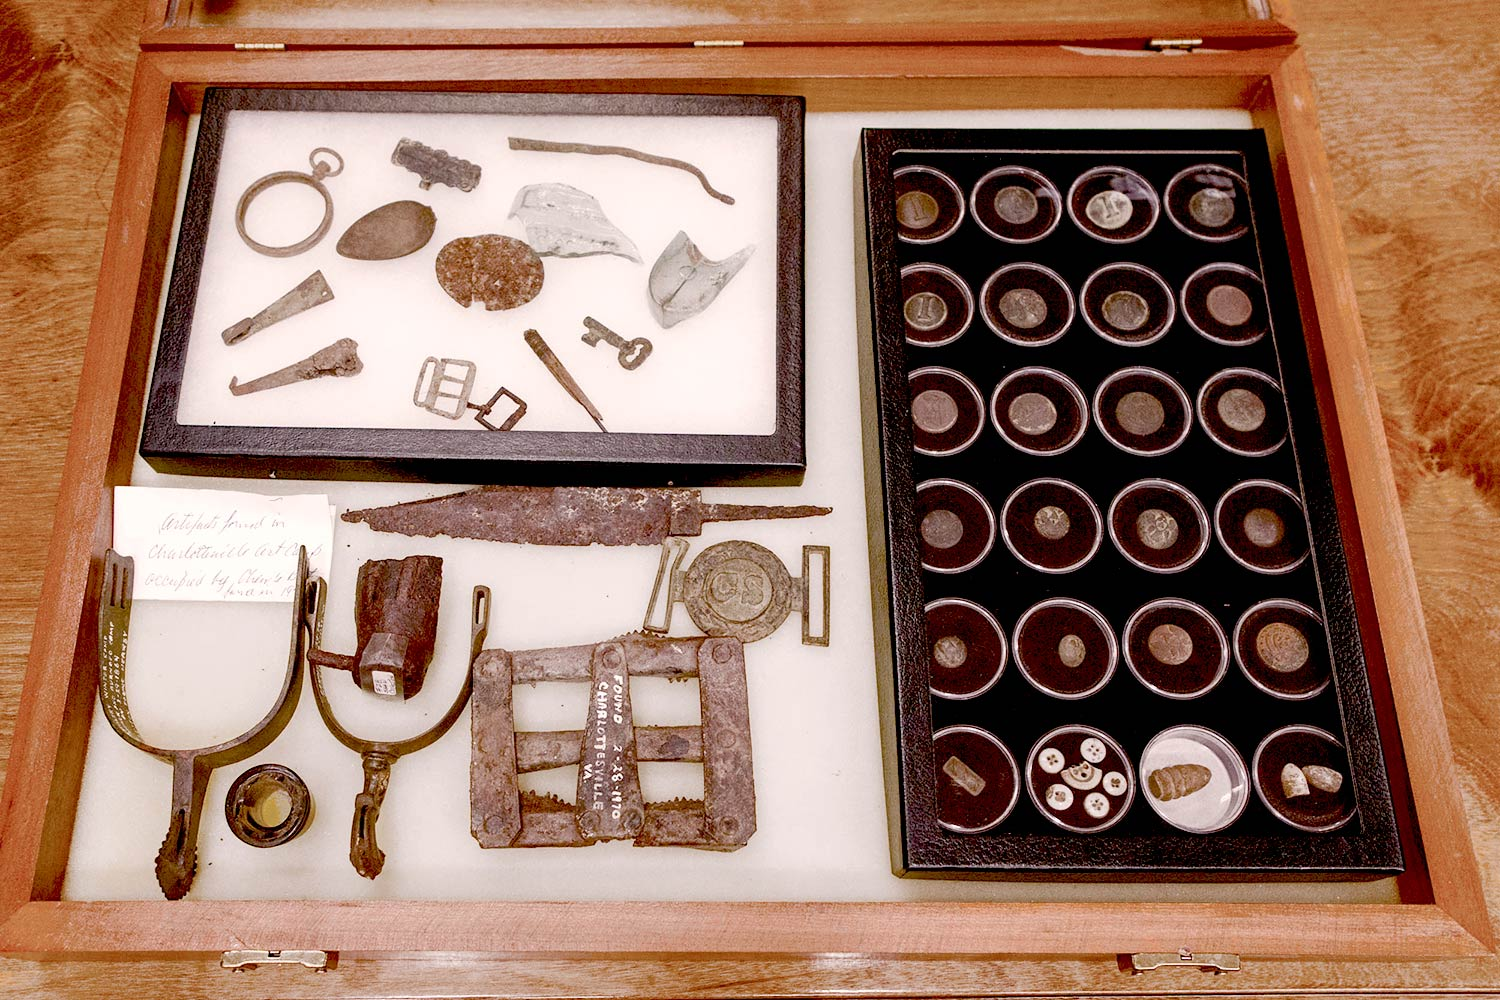 The full Shaw collection provides a window in everyday military life during the Civil War. (Photo by Sanjay Suchak/University Communications)